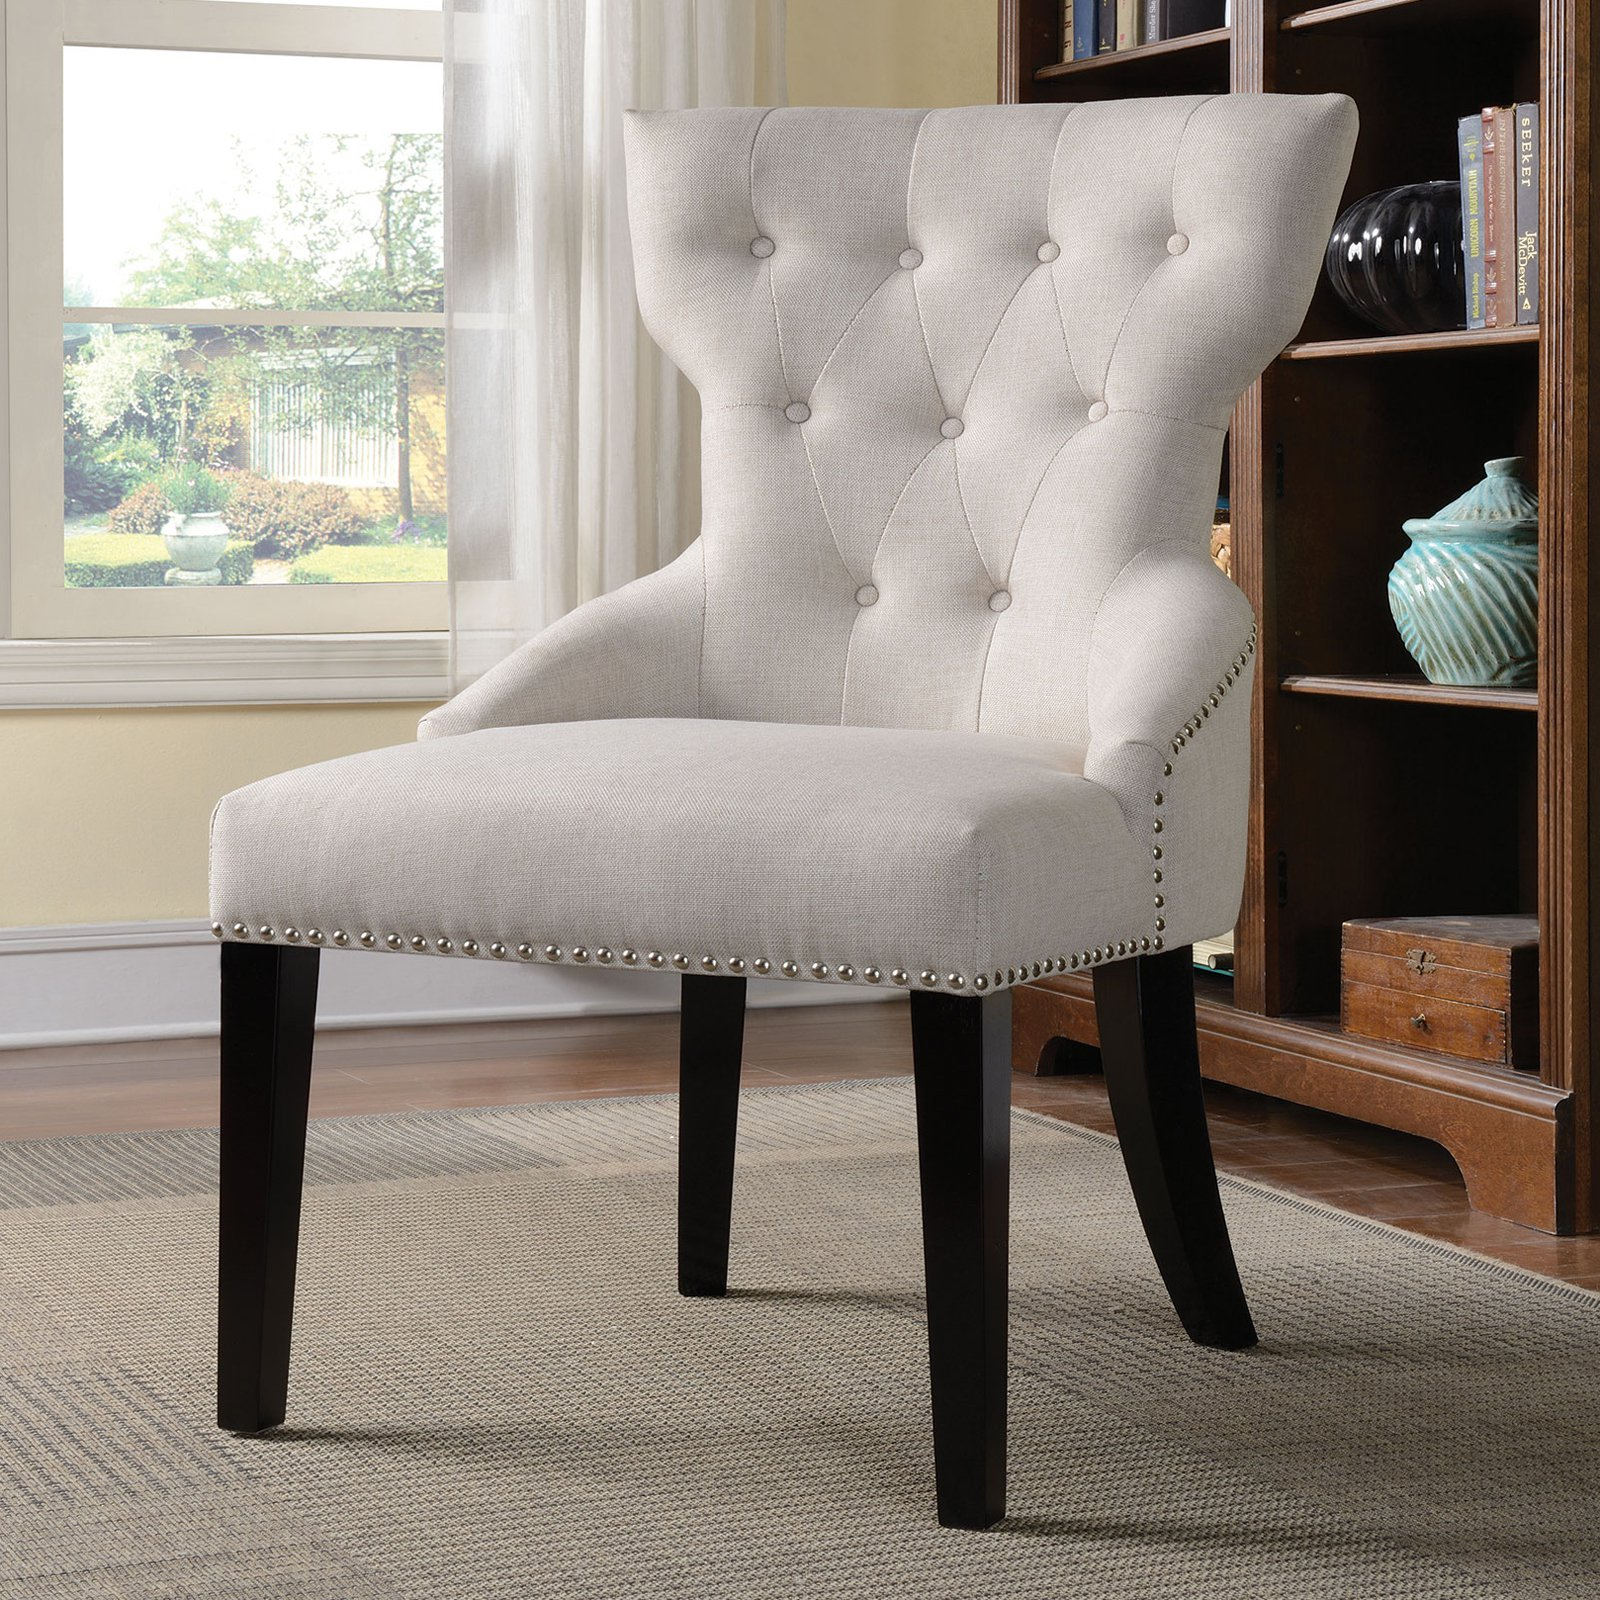 Coaster Accent Chair Coaster Company Traditional Accent Chair Cream